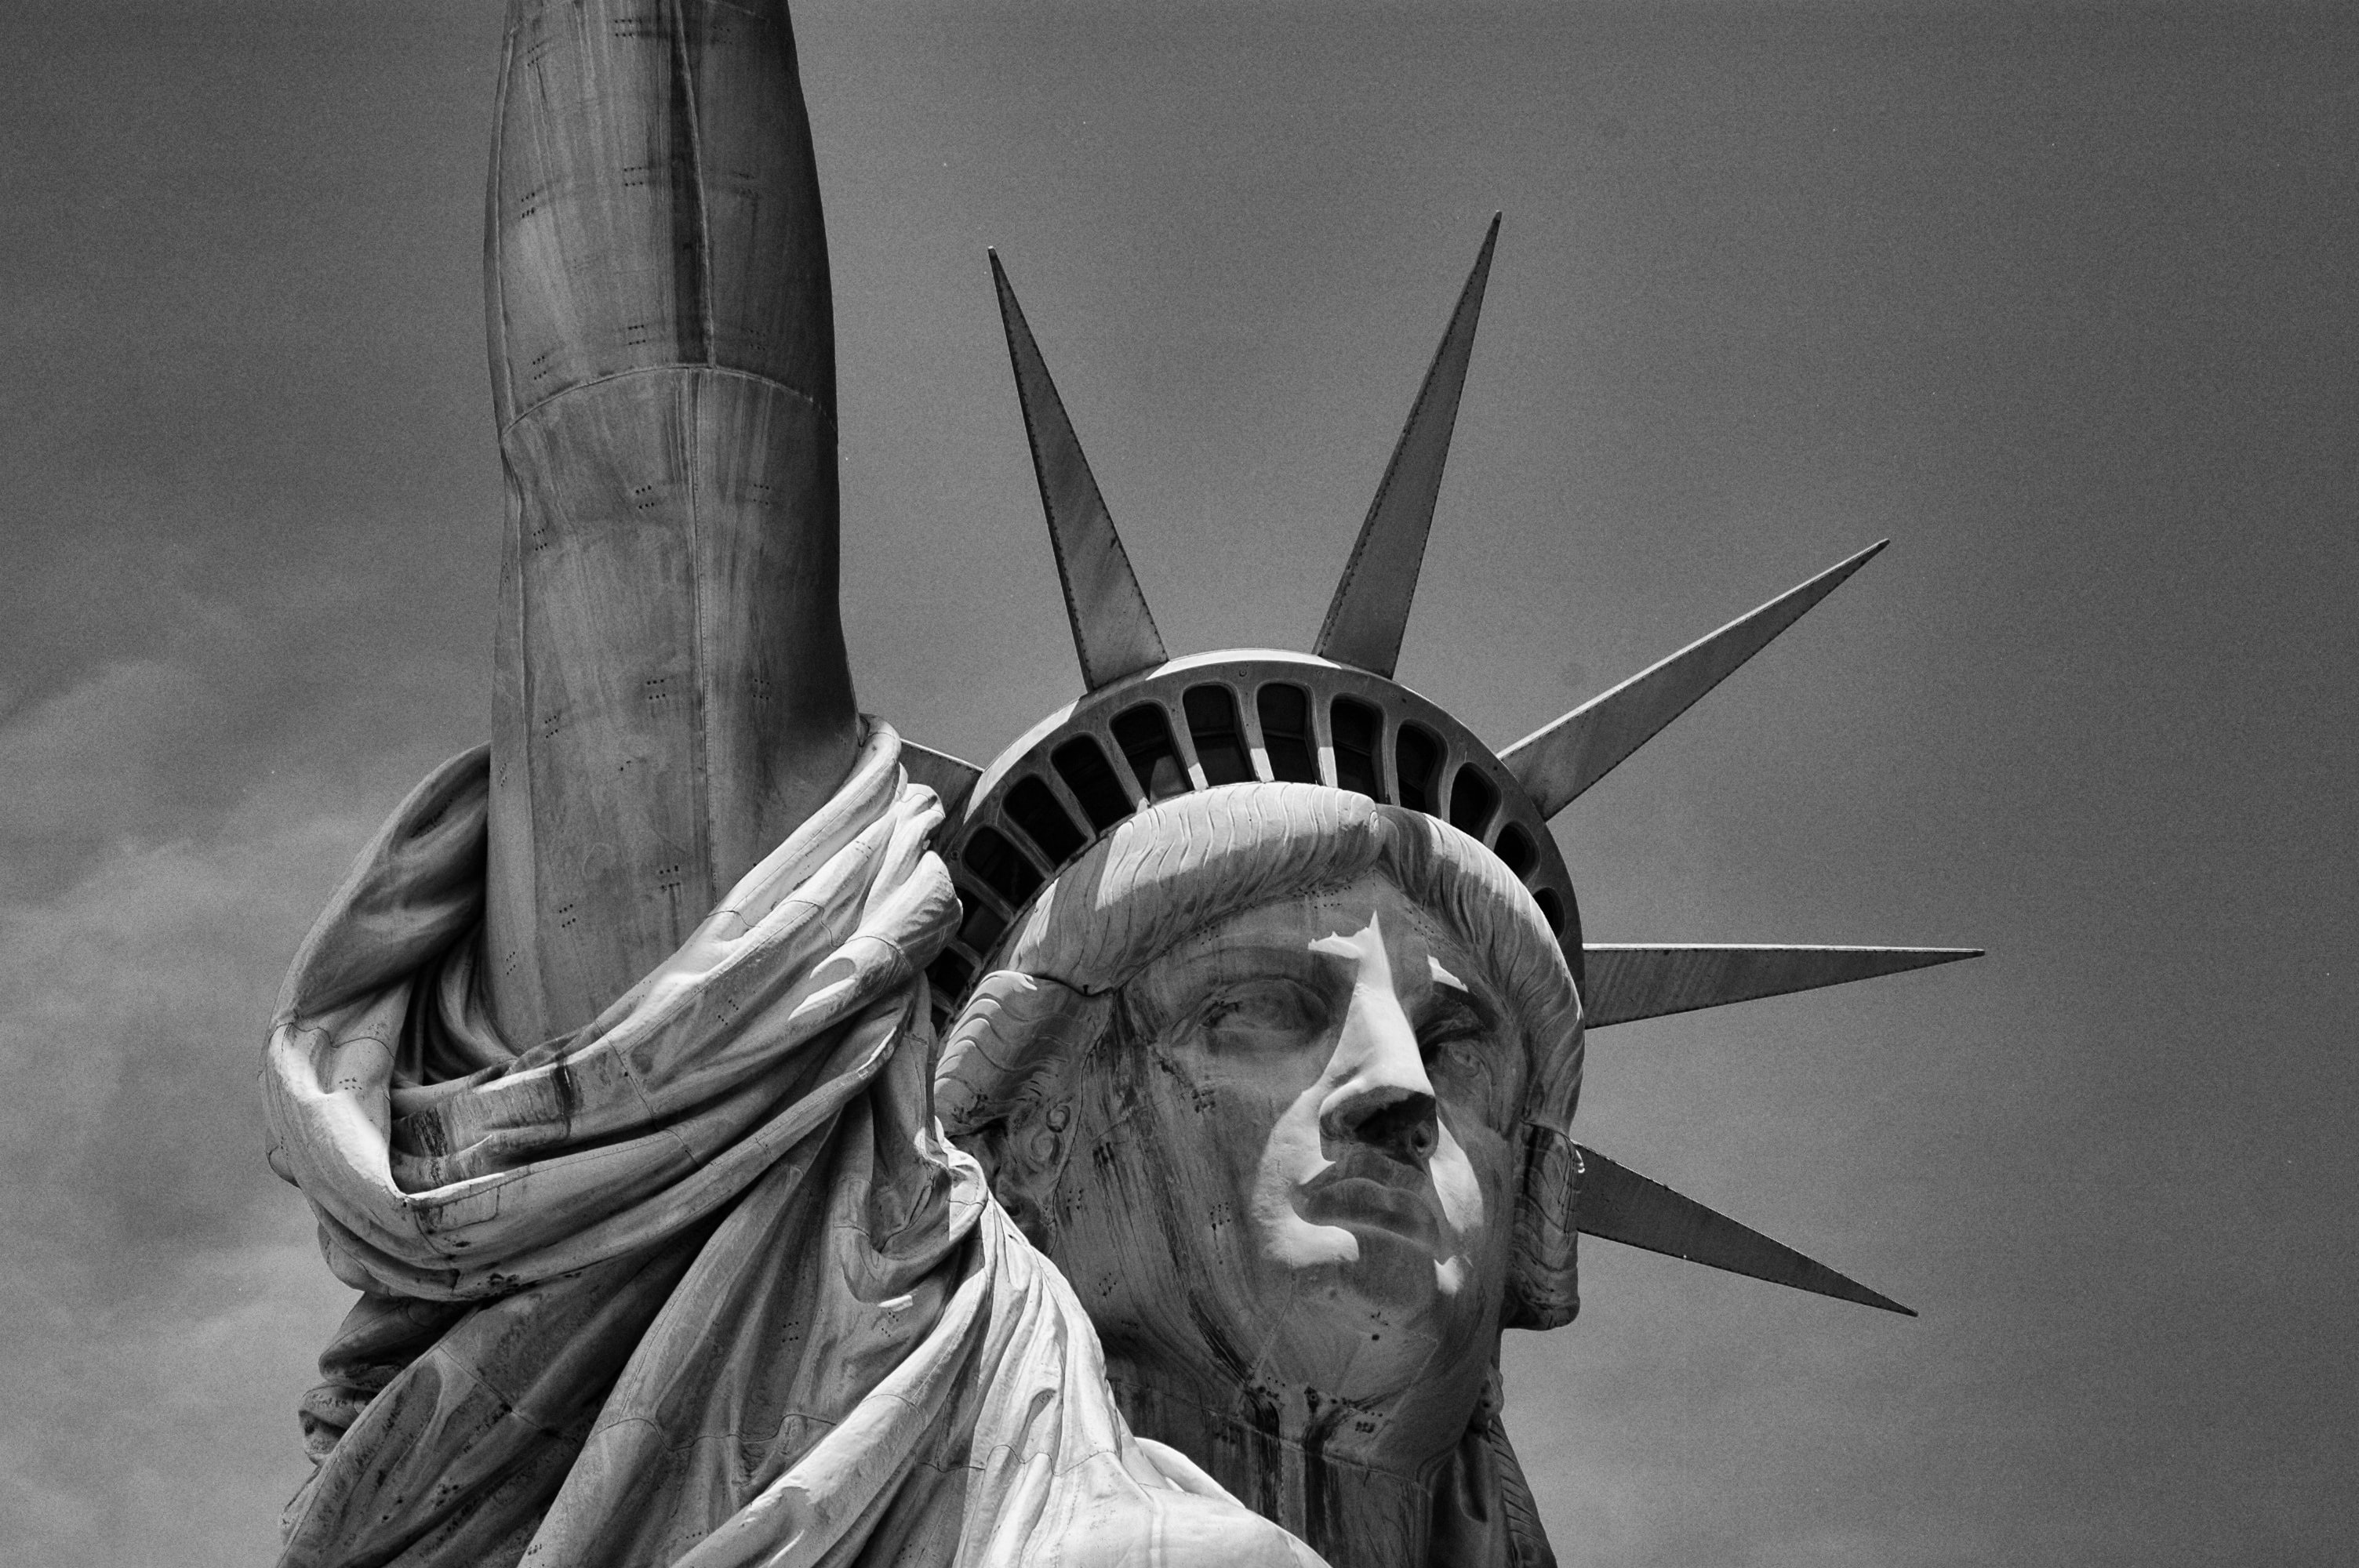 Statue Of Liberty grayscale photo